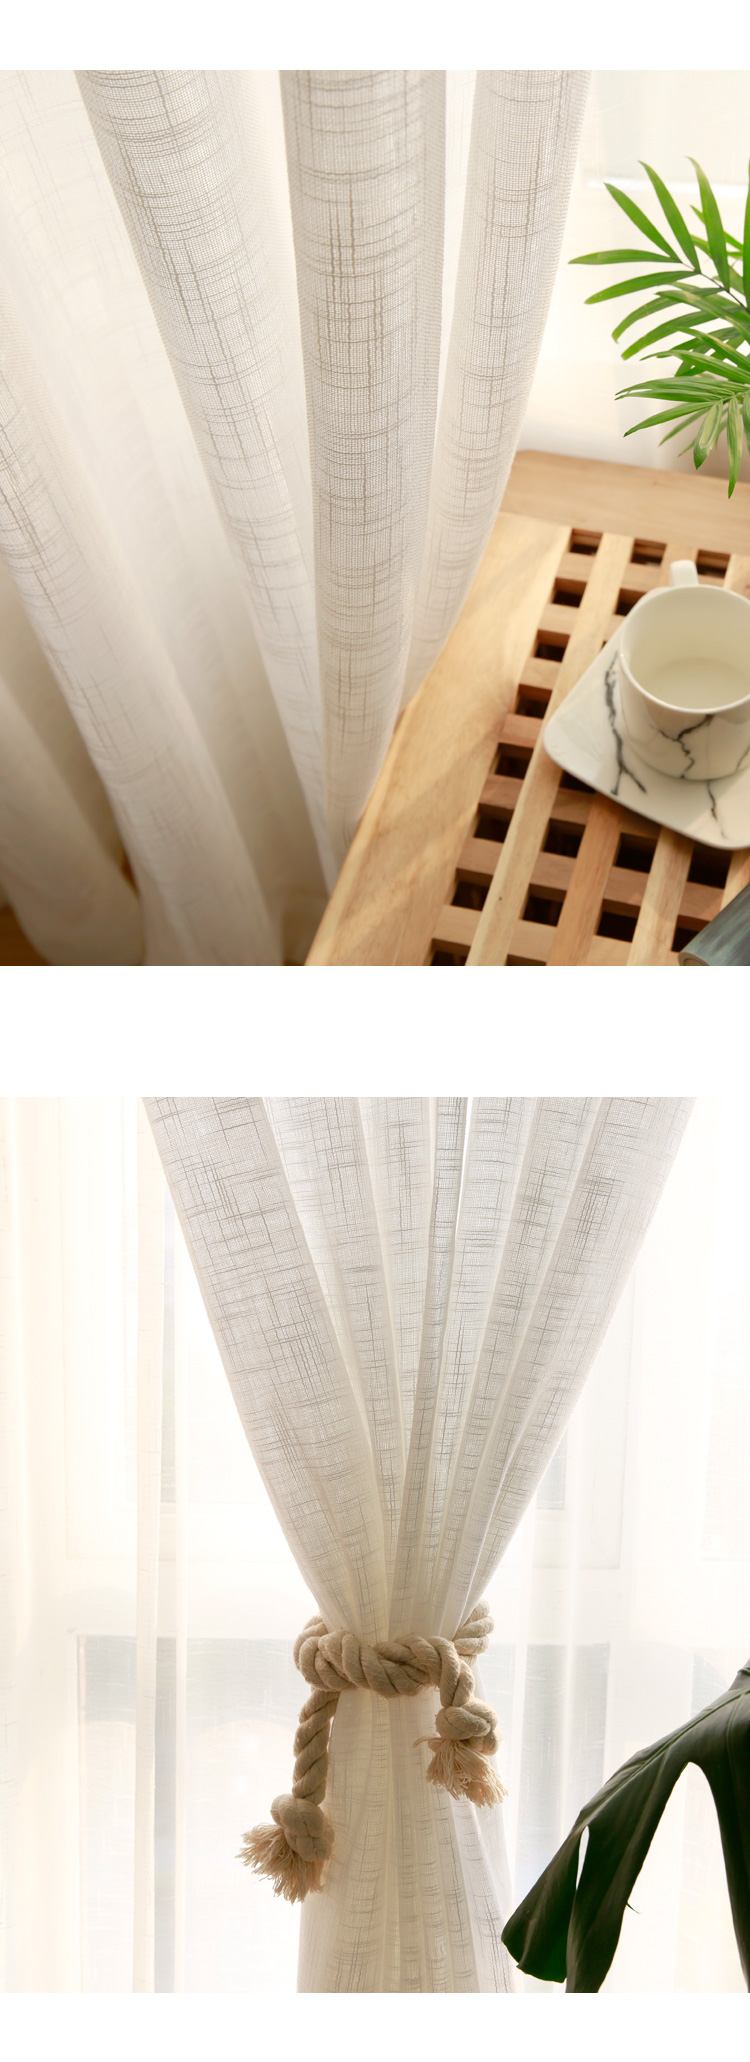 CITYINCITY Tulle  American Curtains for Living room Soft White Voile  solid Rural Tulle Curtain for bedroom ready made curtain06